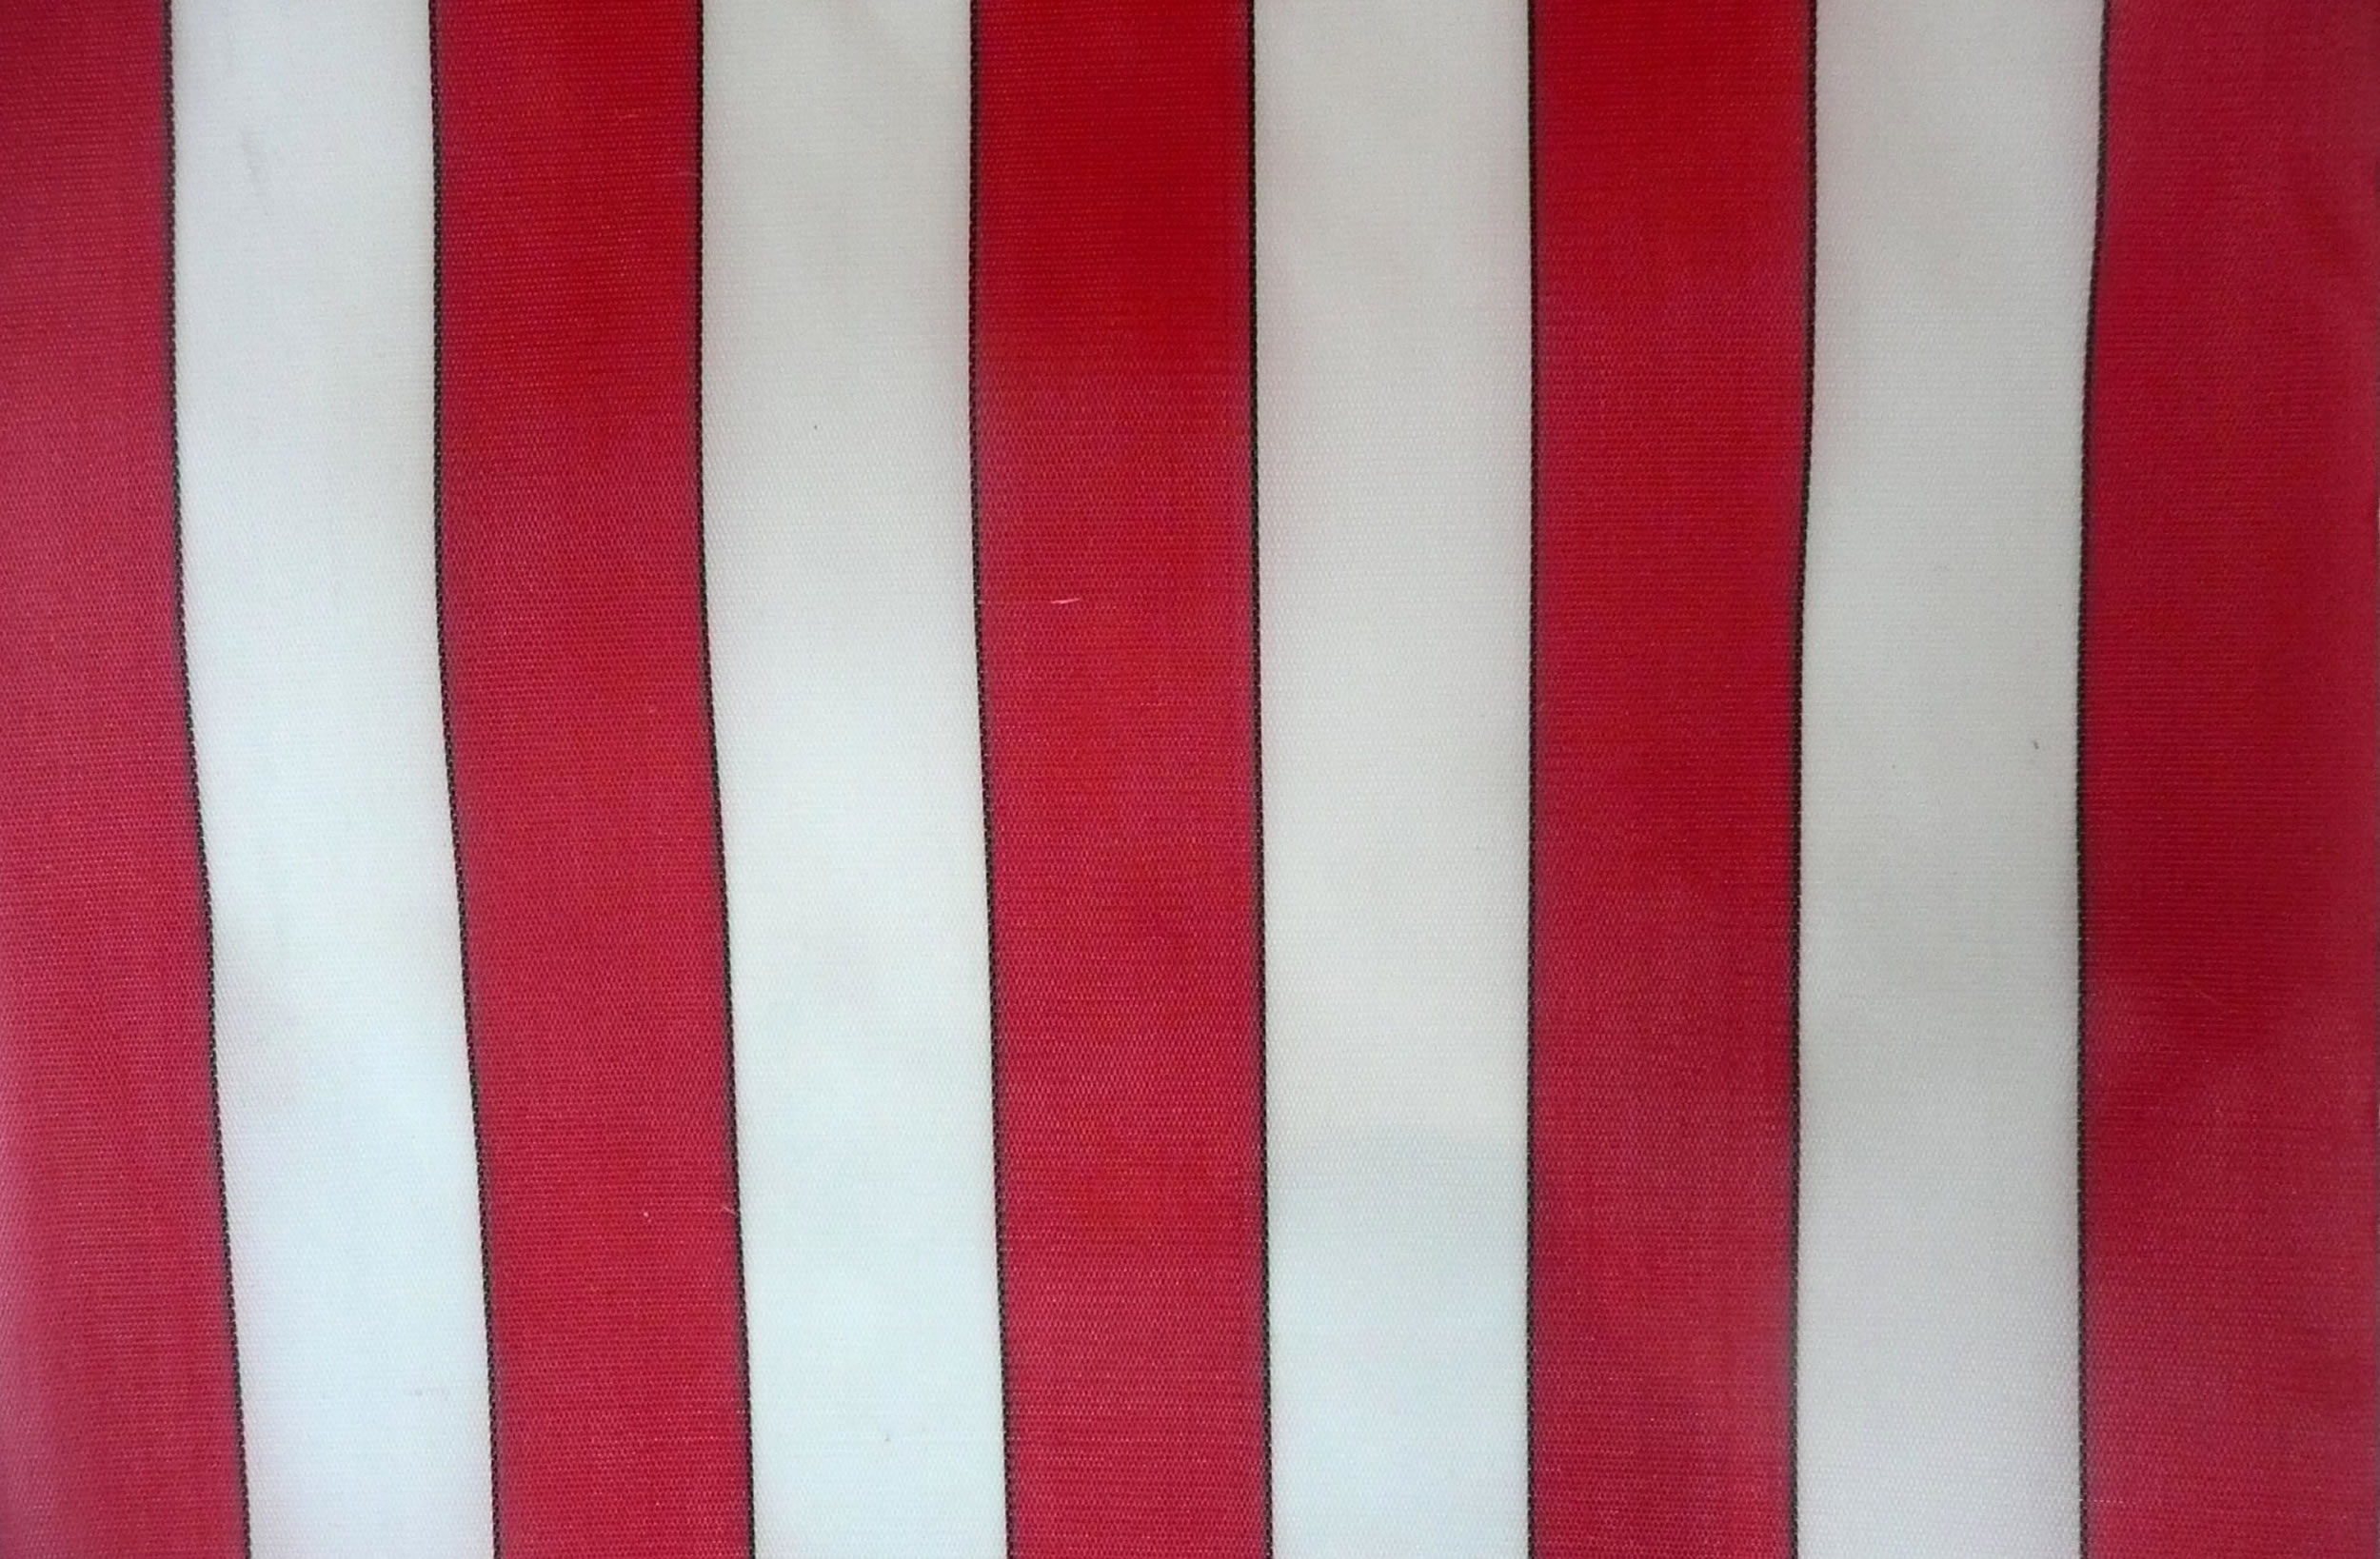 Replacement Deck Chair Slings red, white